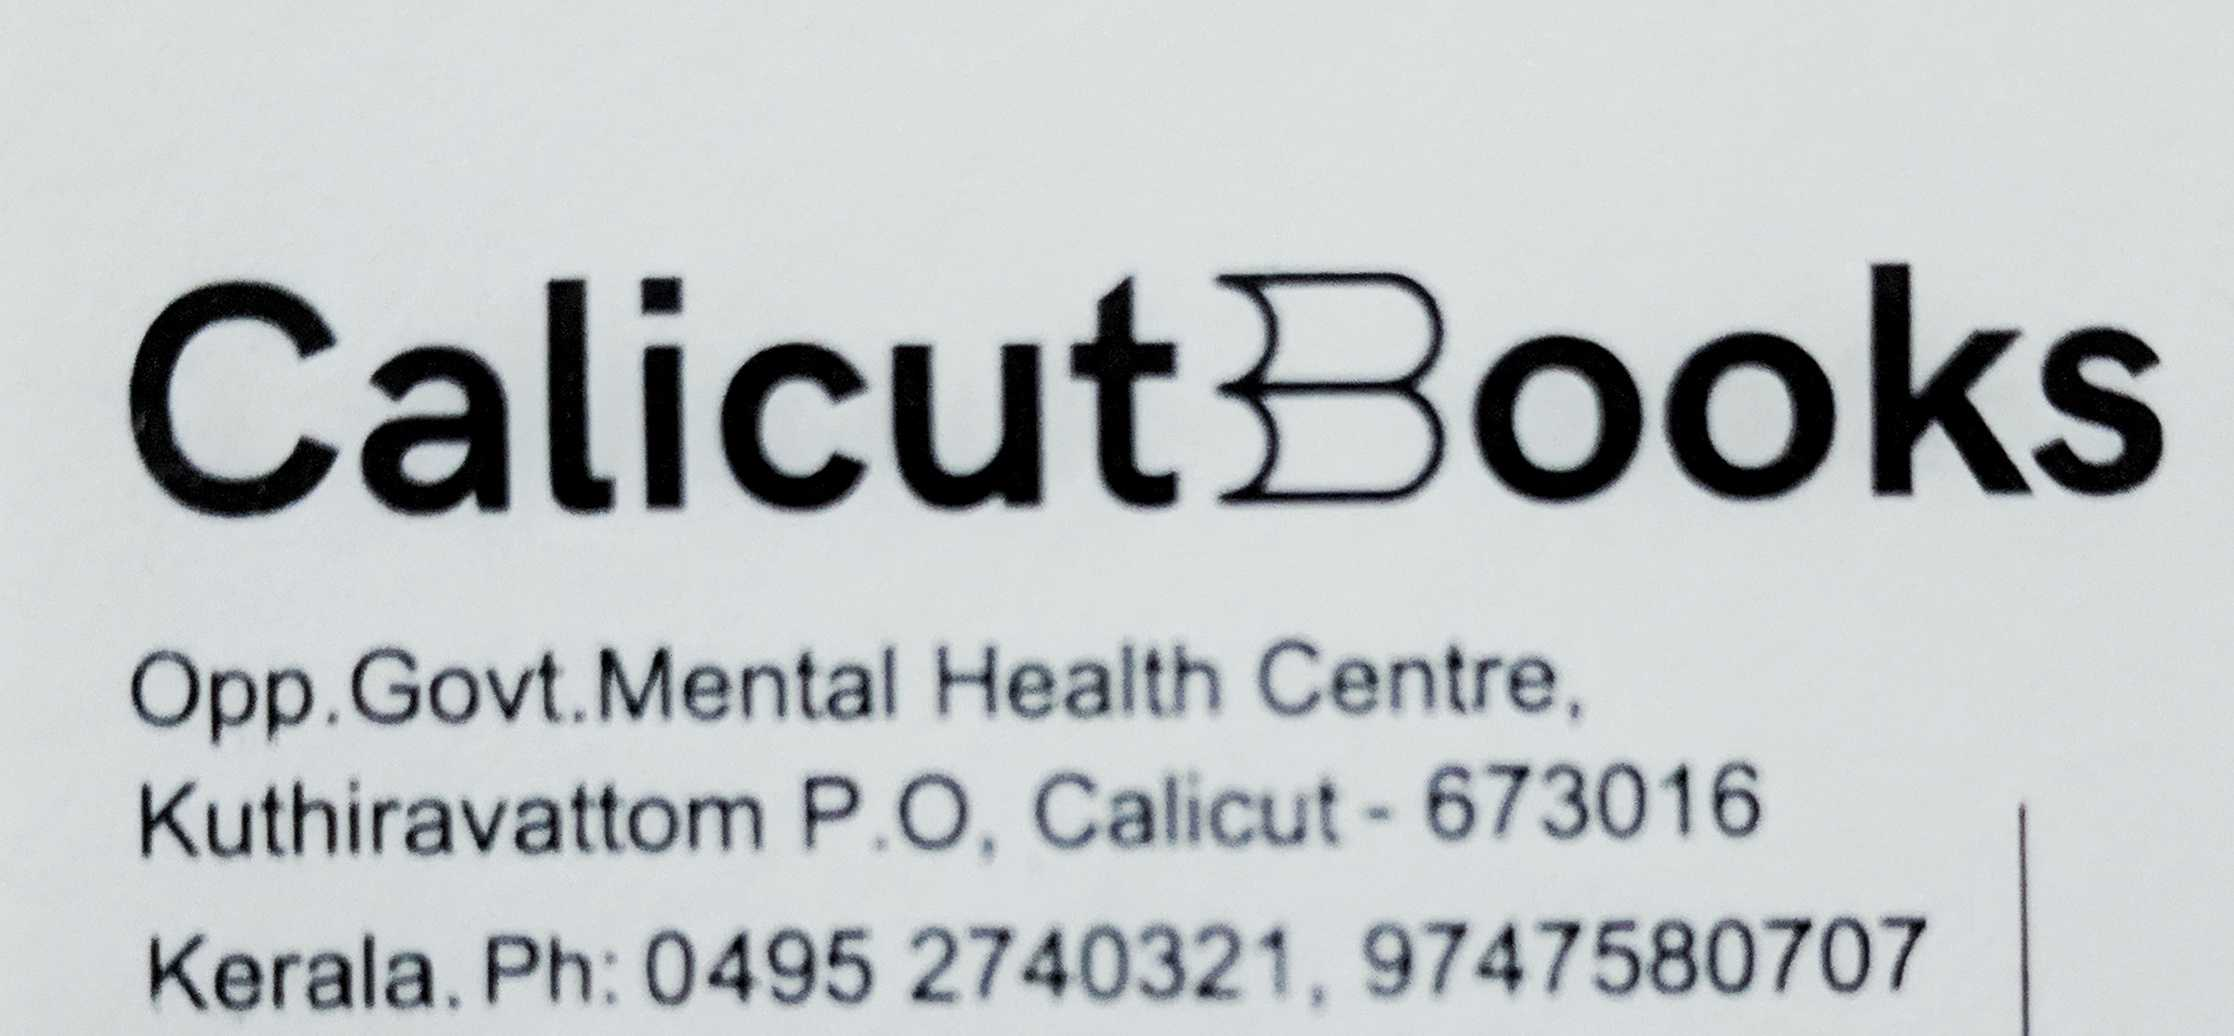 Calicutbooks, BOOK & EDU TOYS,  service in Kovoor, Kozhikode